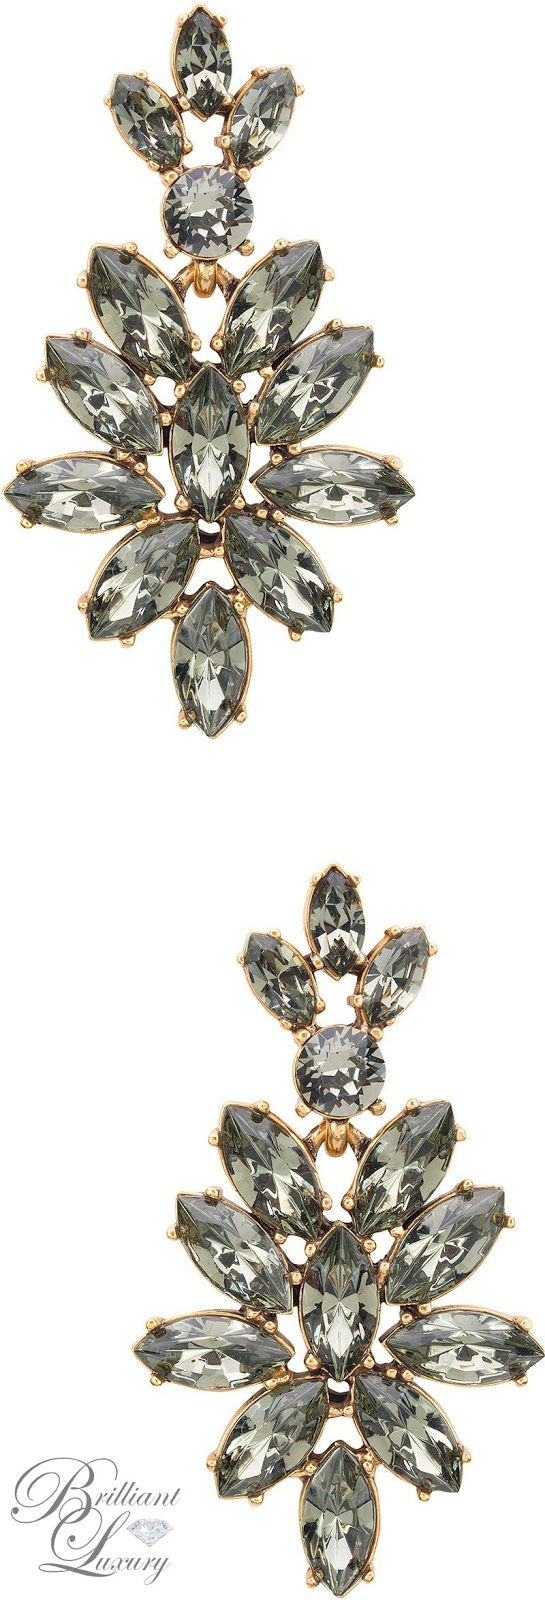 ♦Oscar de la Renta Earrings 2016